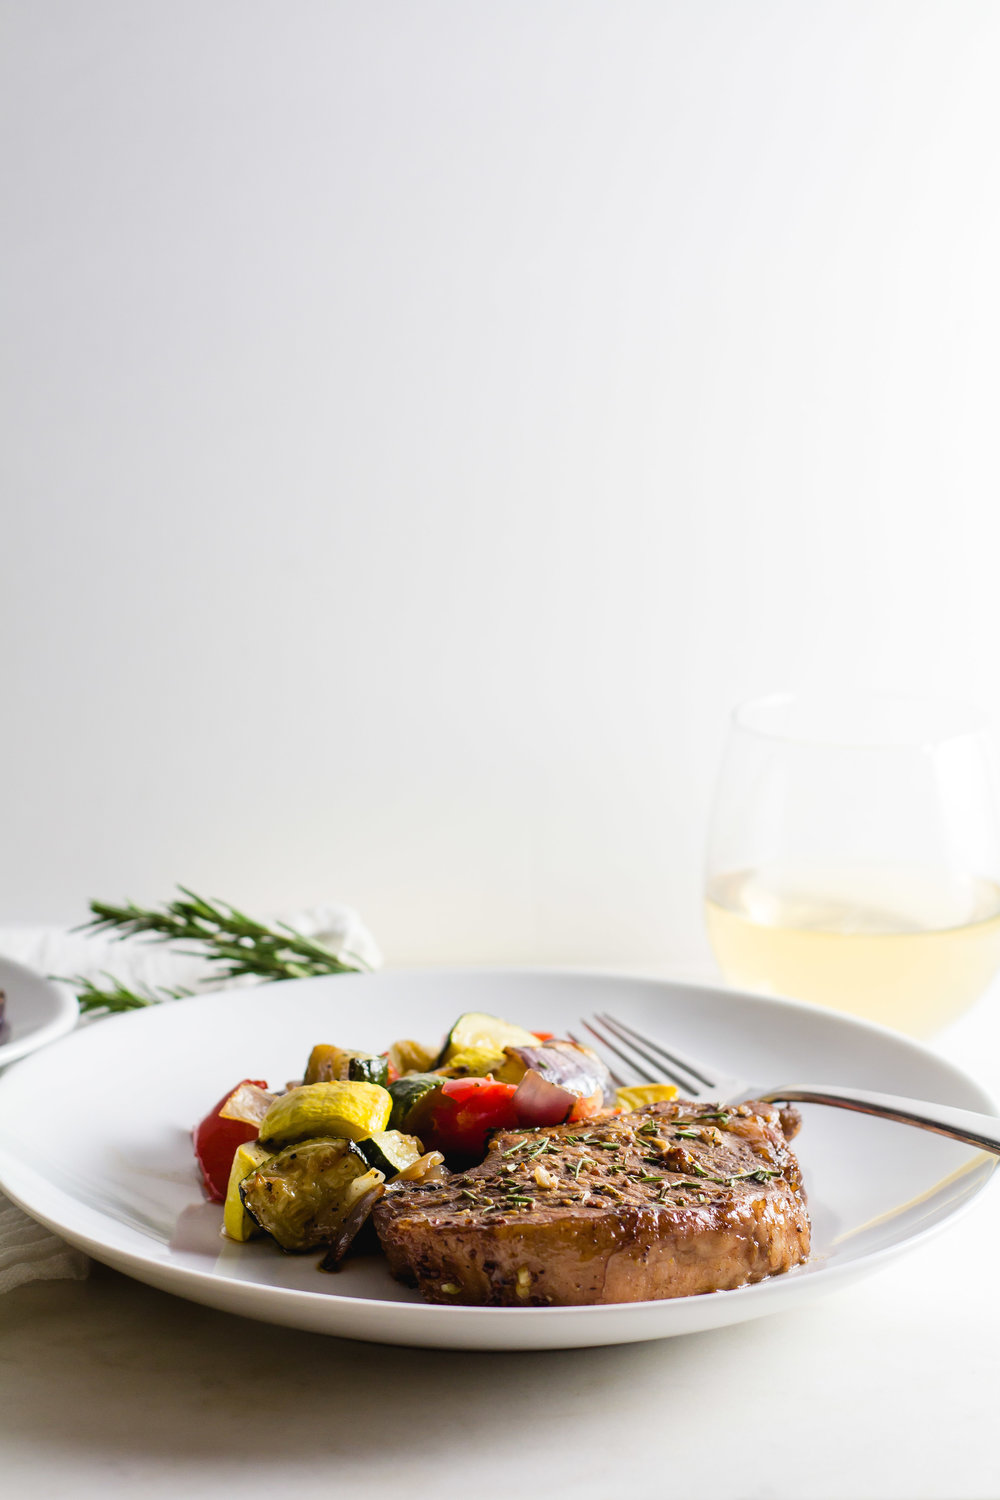 Sheet Pan Balsamic Pork Chops with Roasted Veggies - Sarah J. Hauser